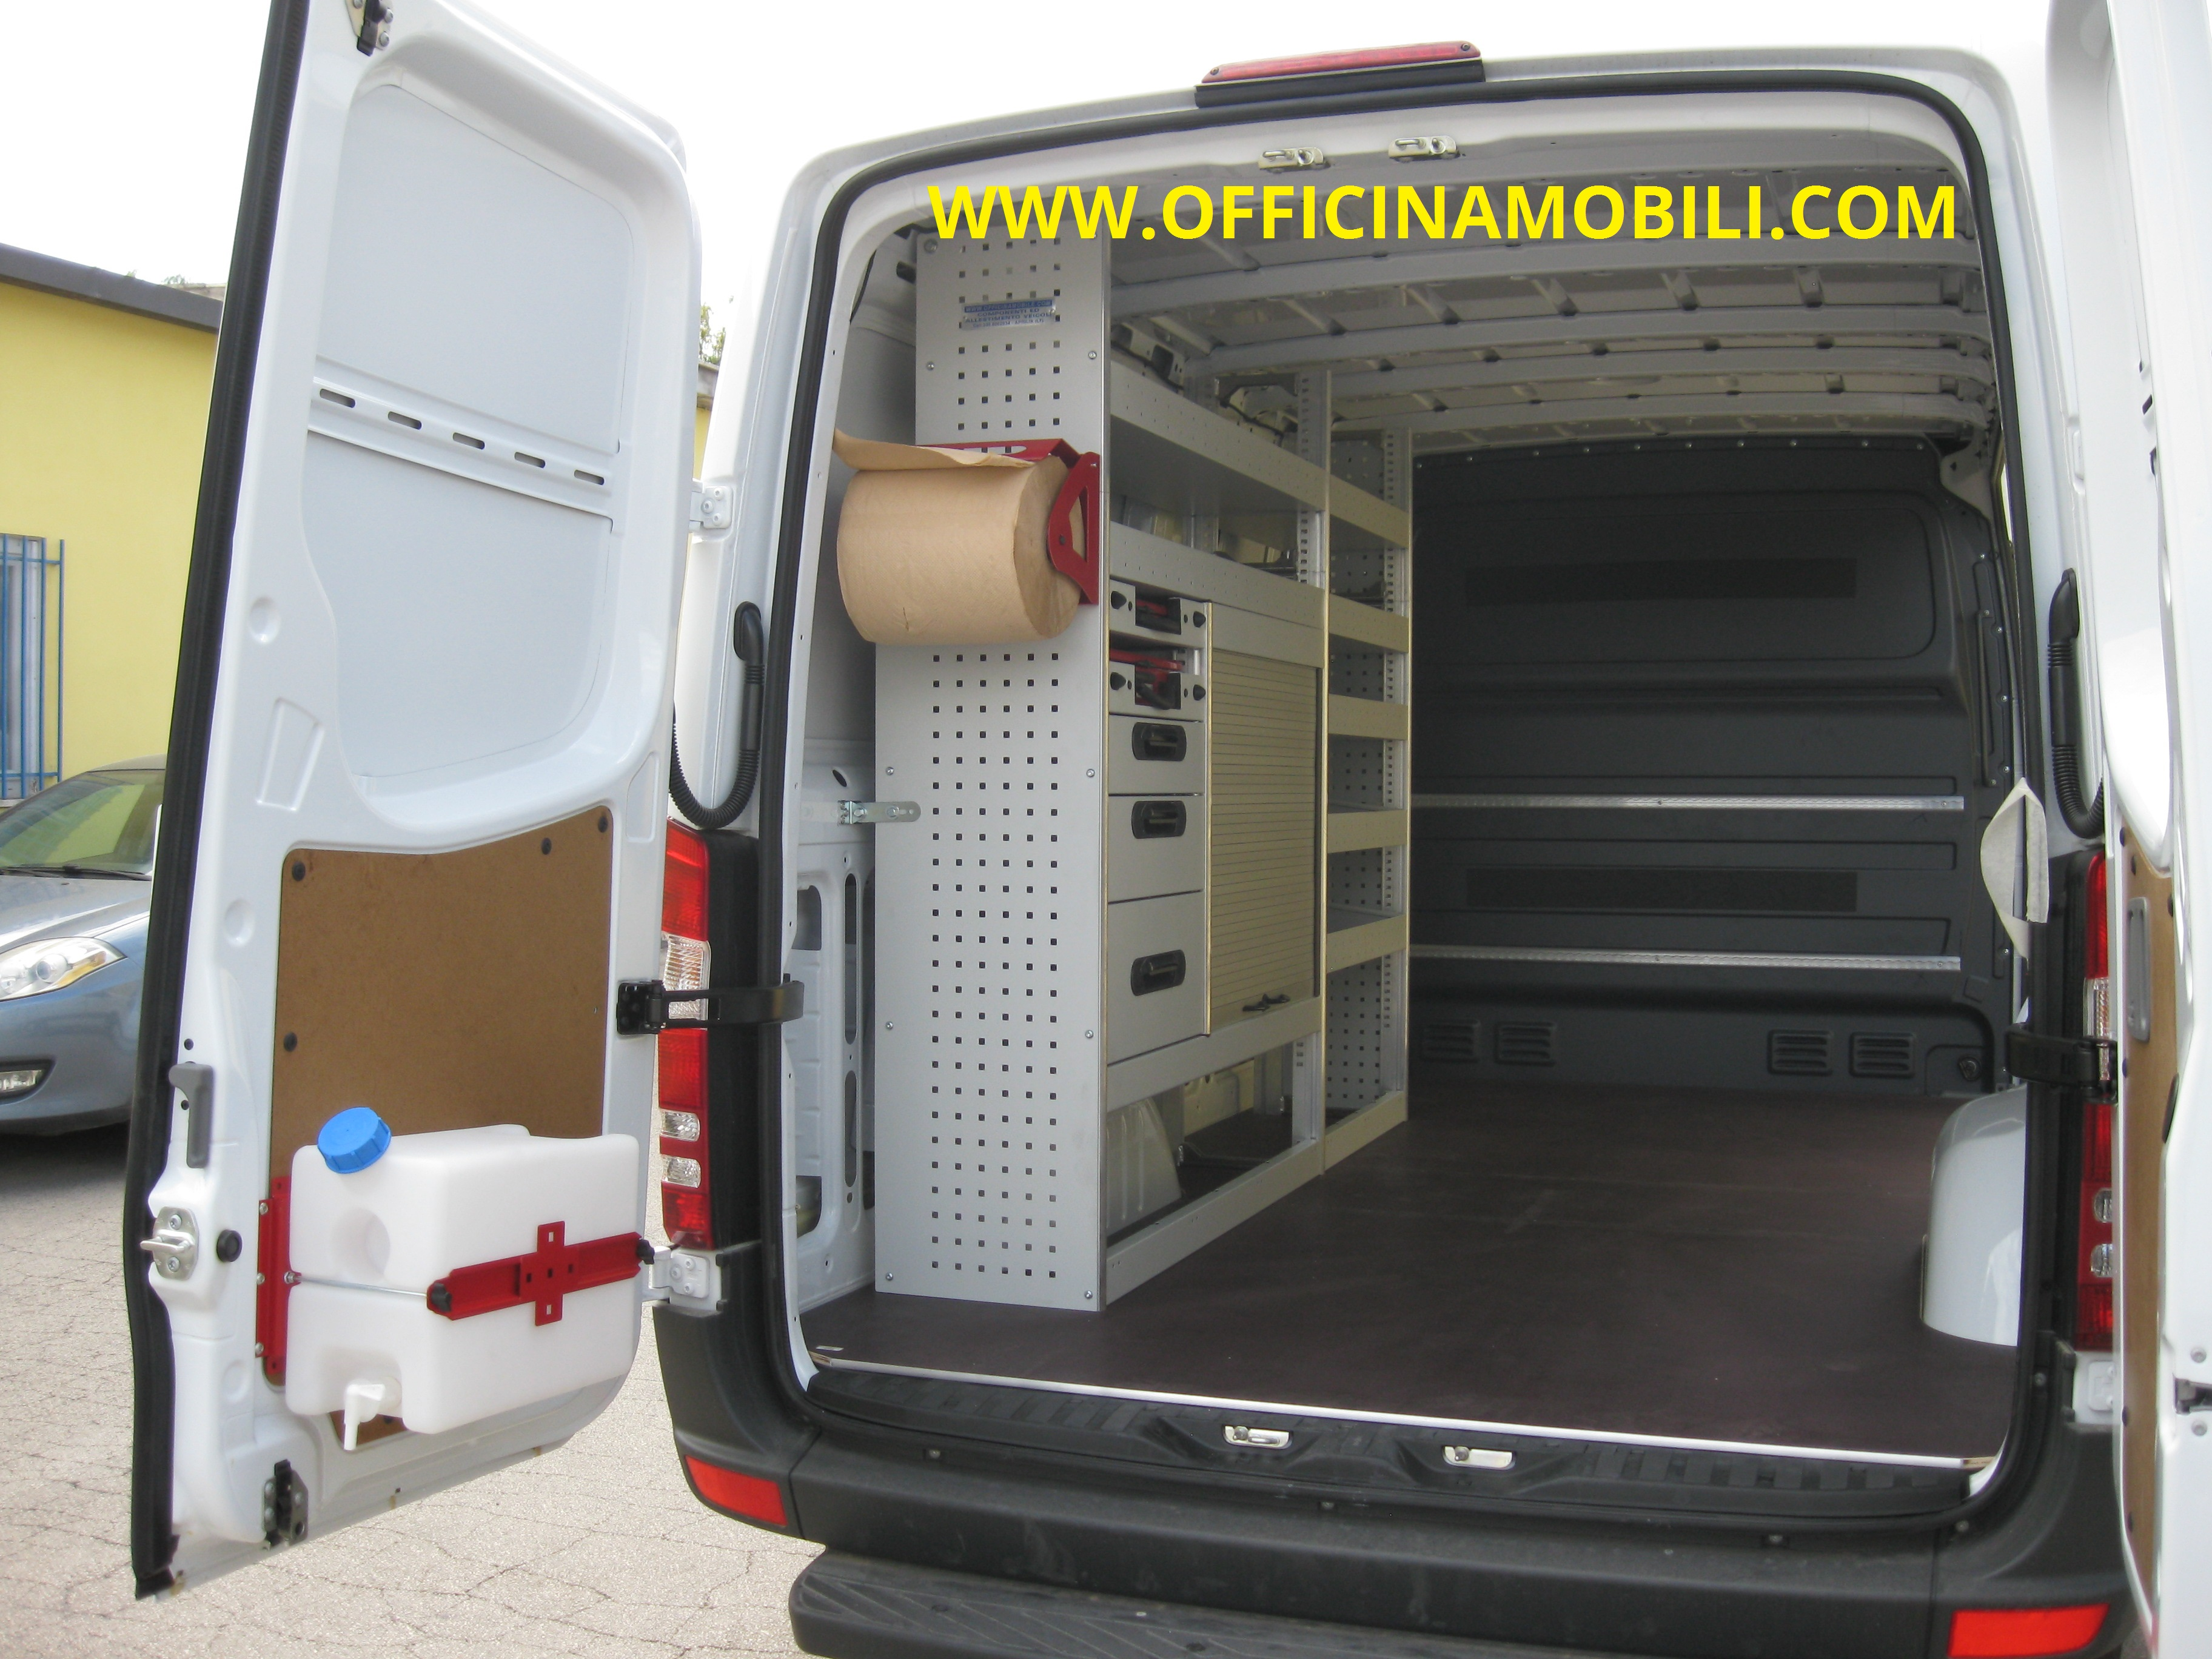 Officina mobile volkswagen crafter